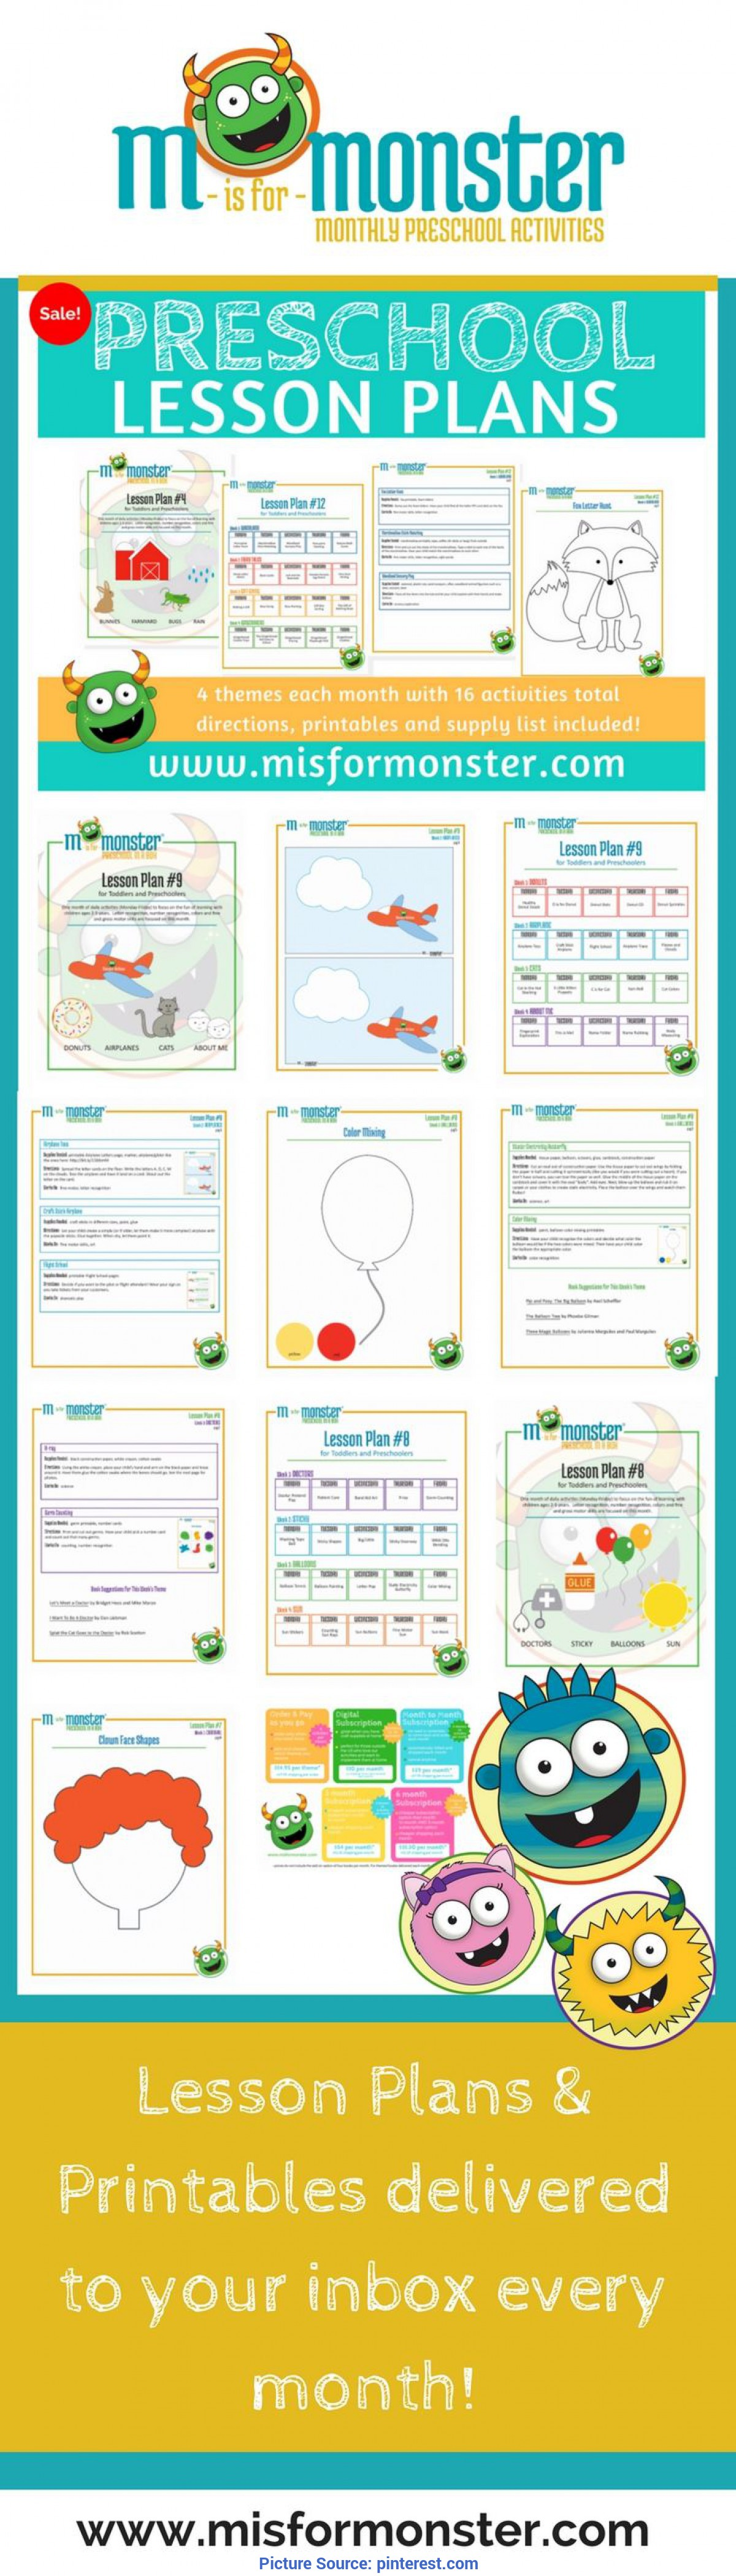 Useful Lesson Plan Example In English Lesson Plan Sample